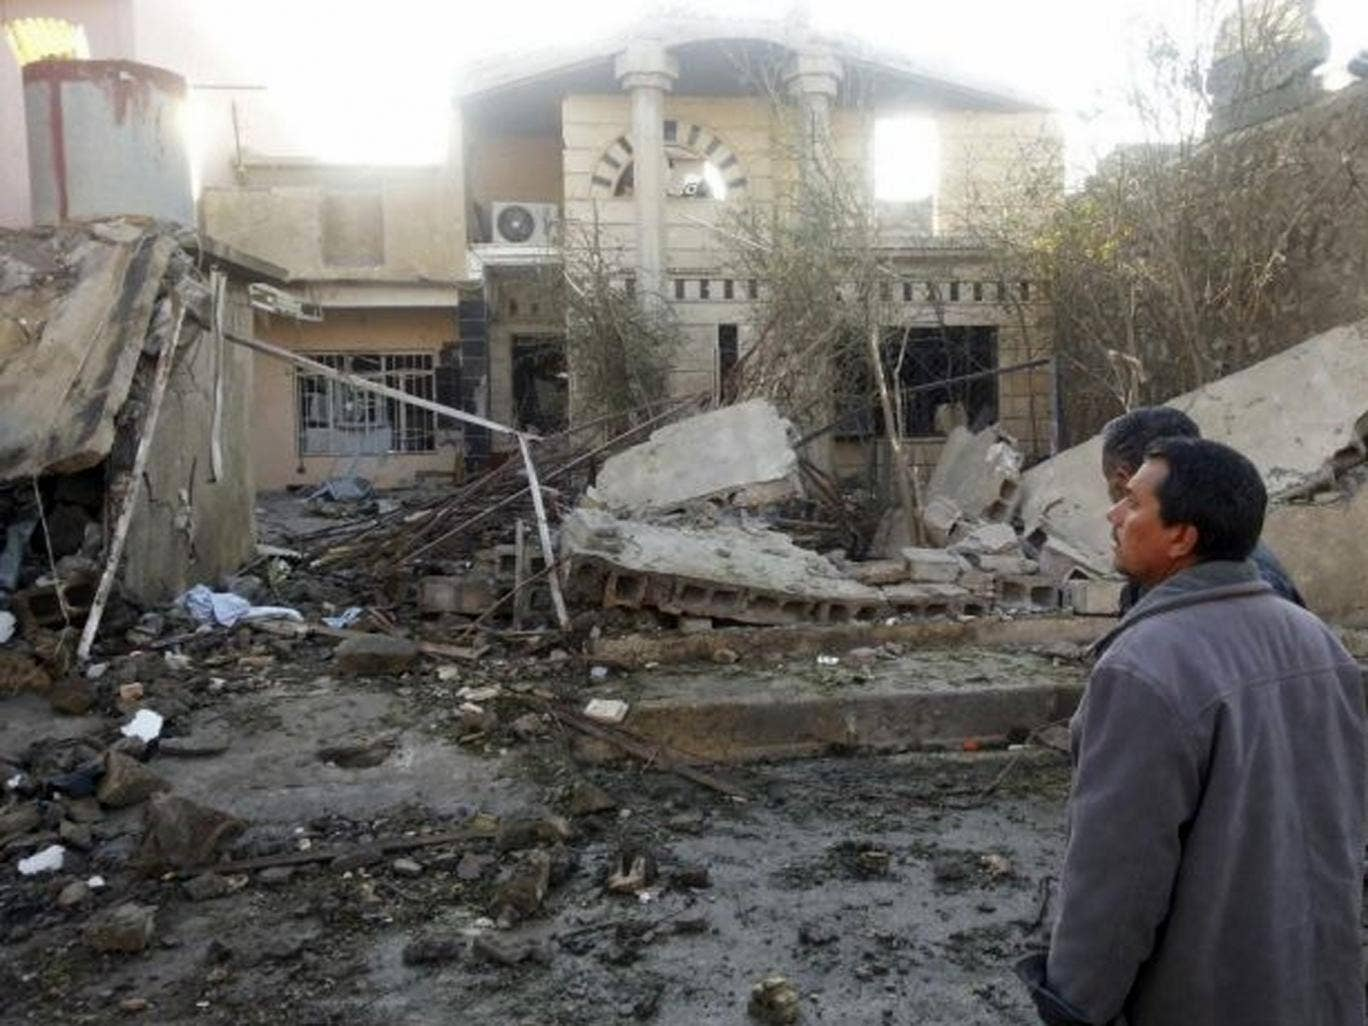 Civilians at the site of a car bomb attack in the town of Tuz Khurmatu, north of Baghdad